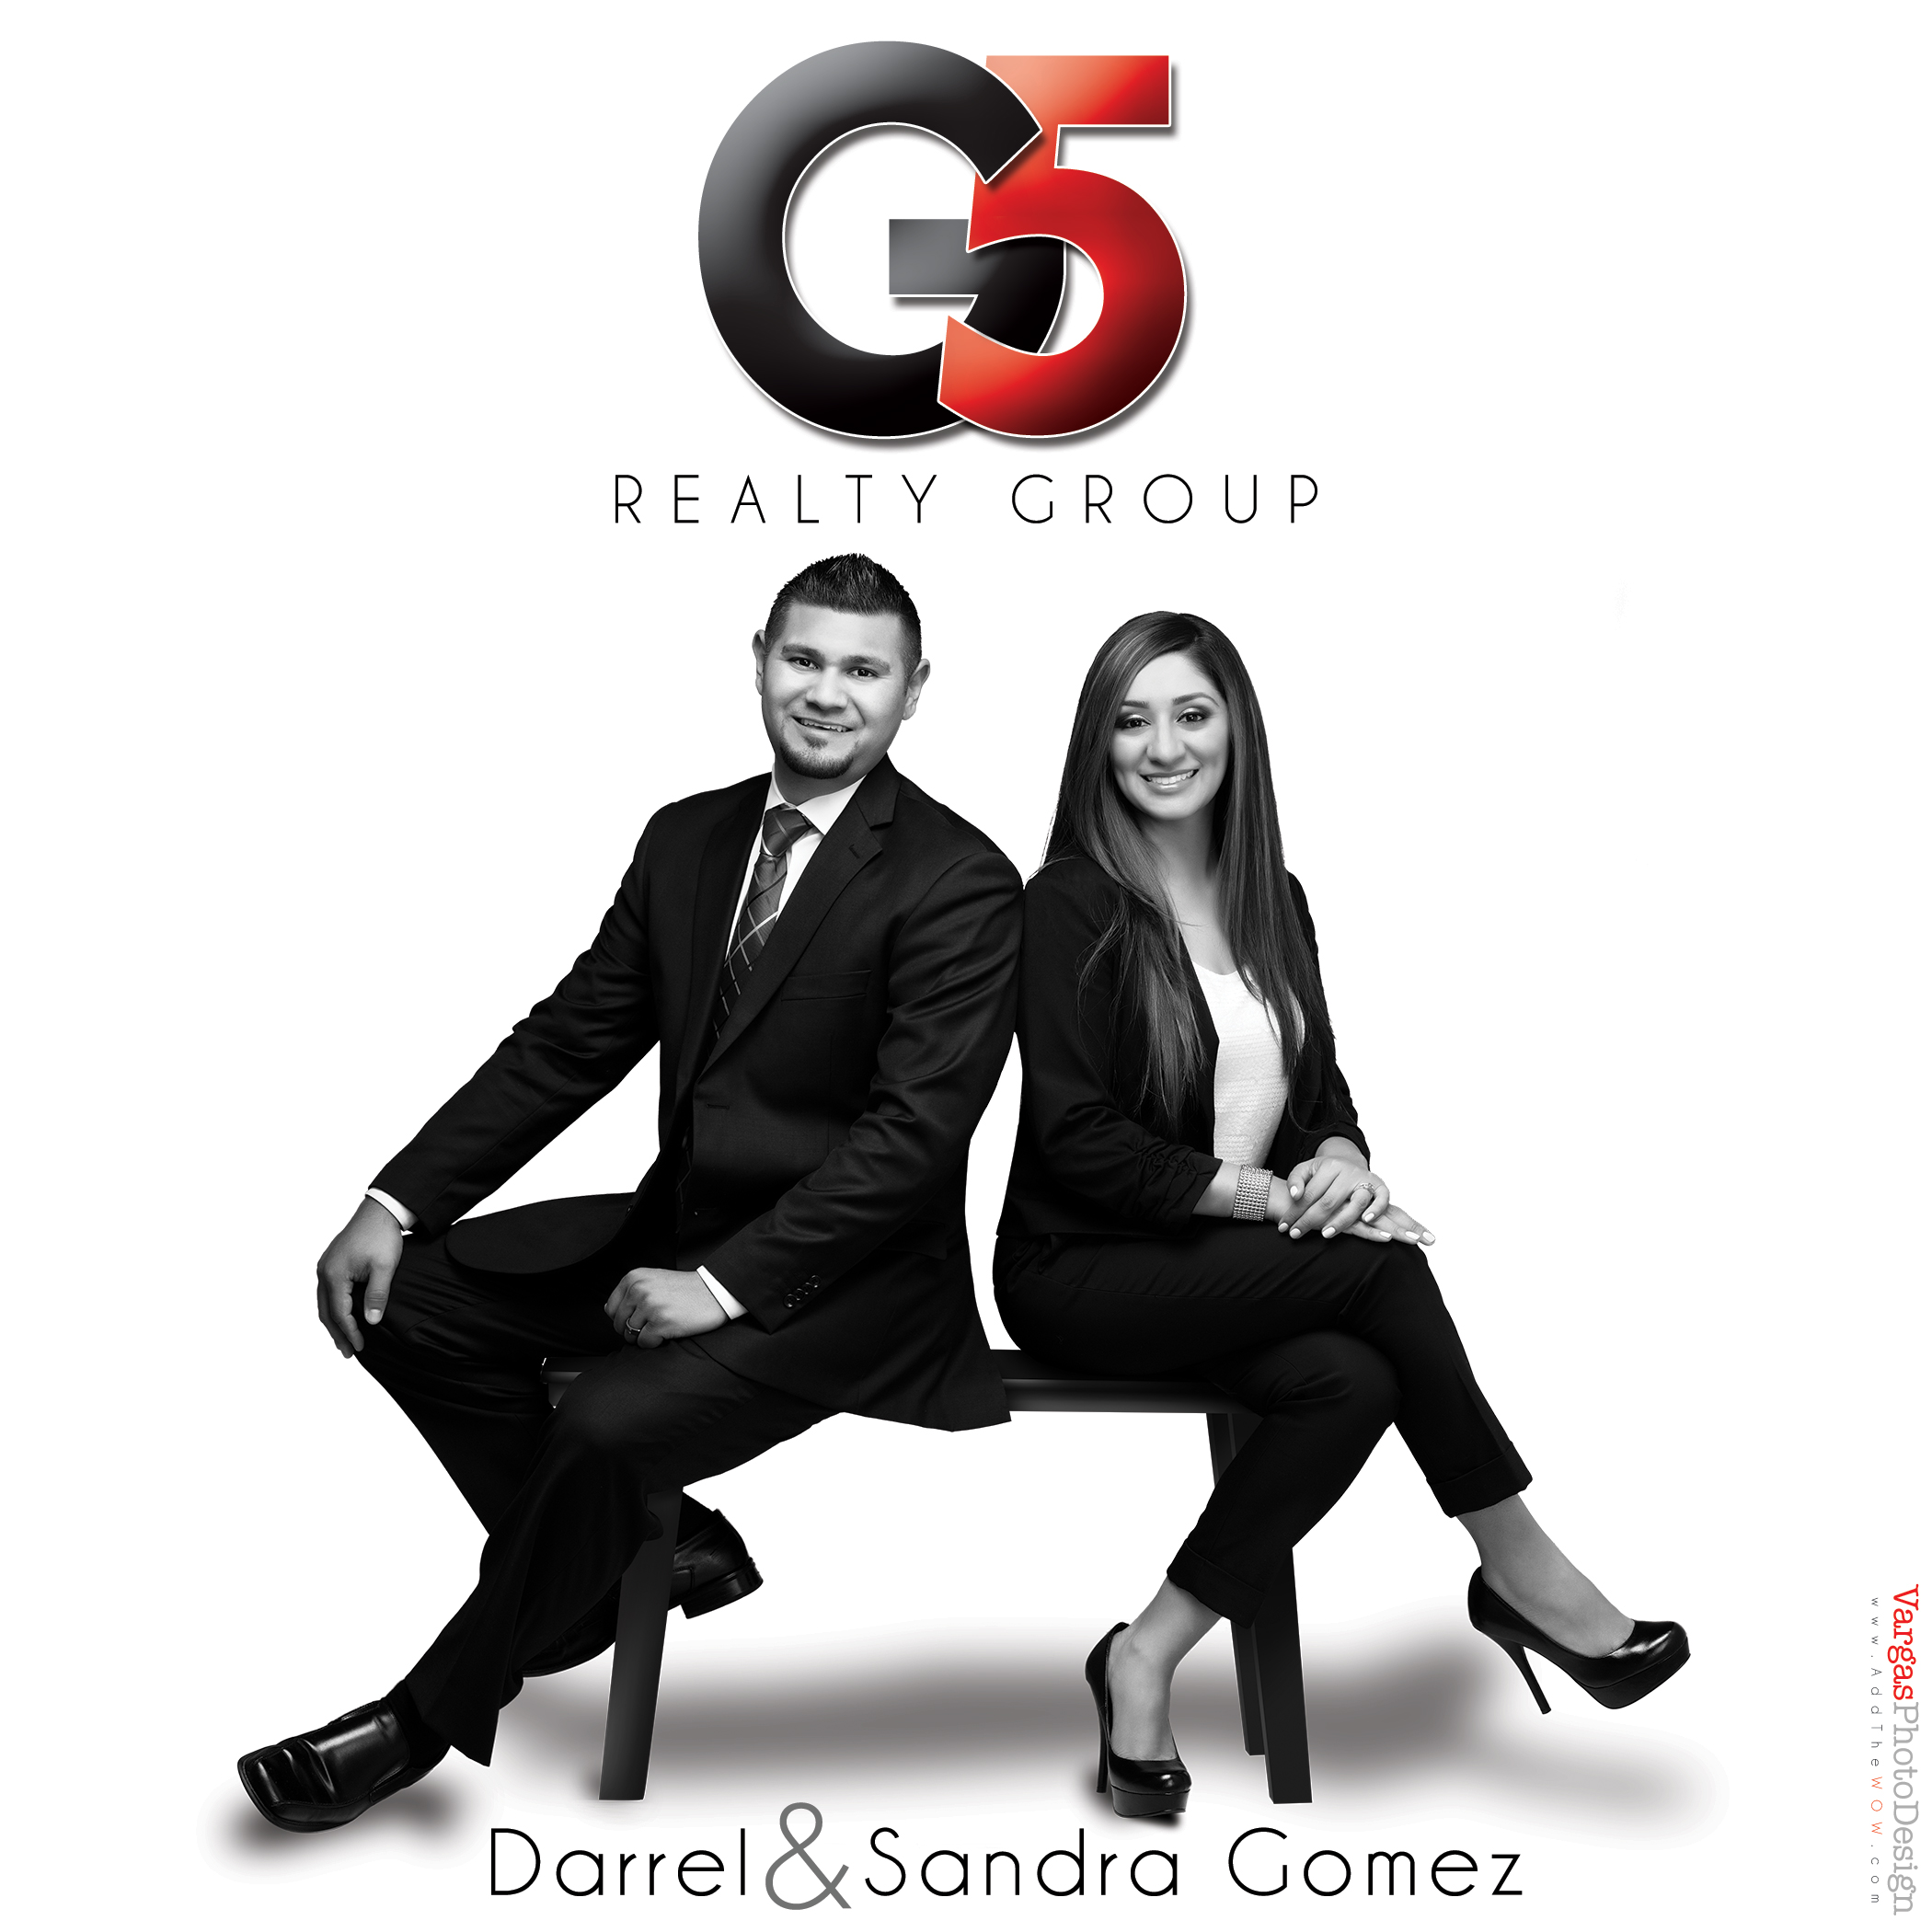 Darrel and Sandra Gomez, Realtors with Keller Williams Realty in Rancho Cucamonga, California.